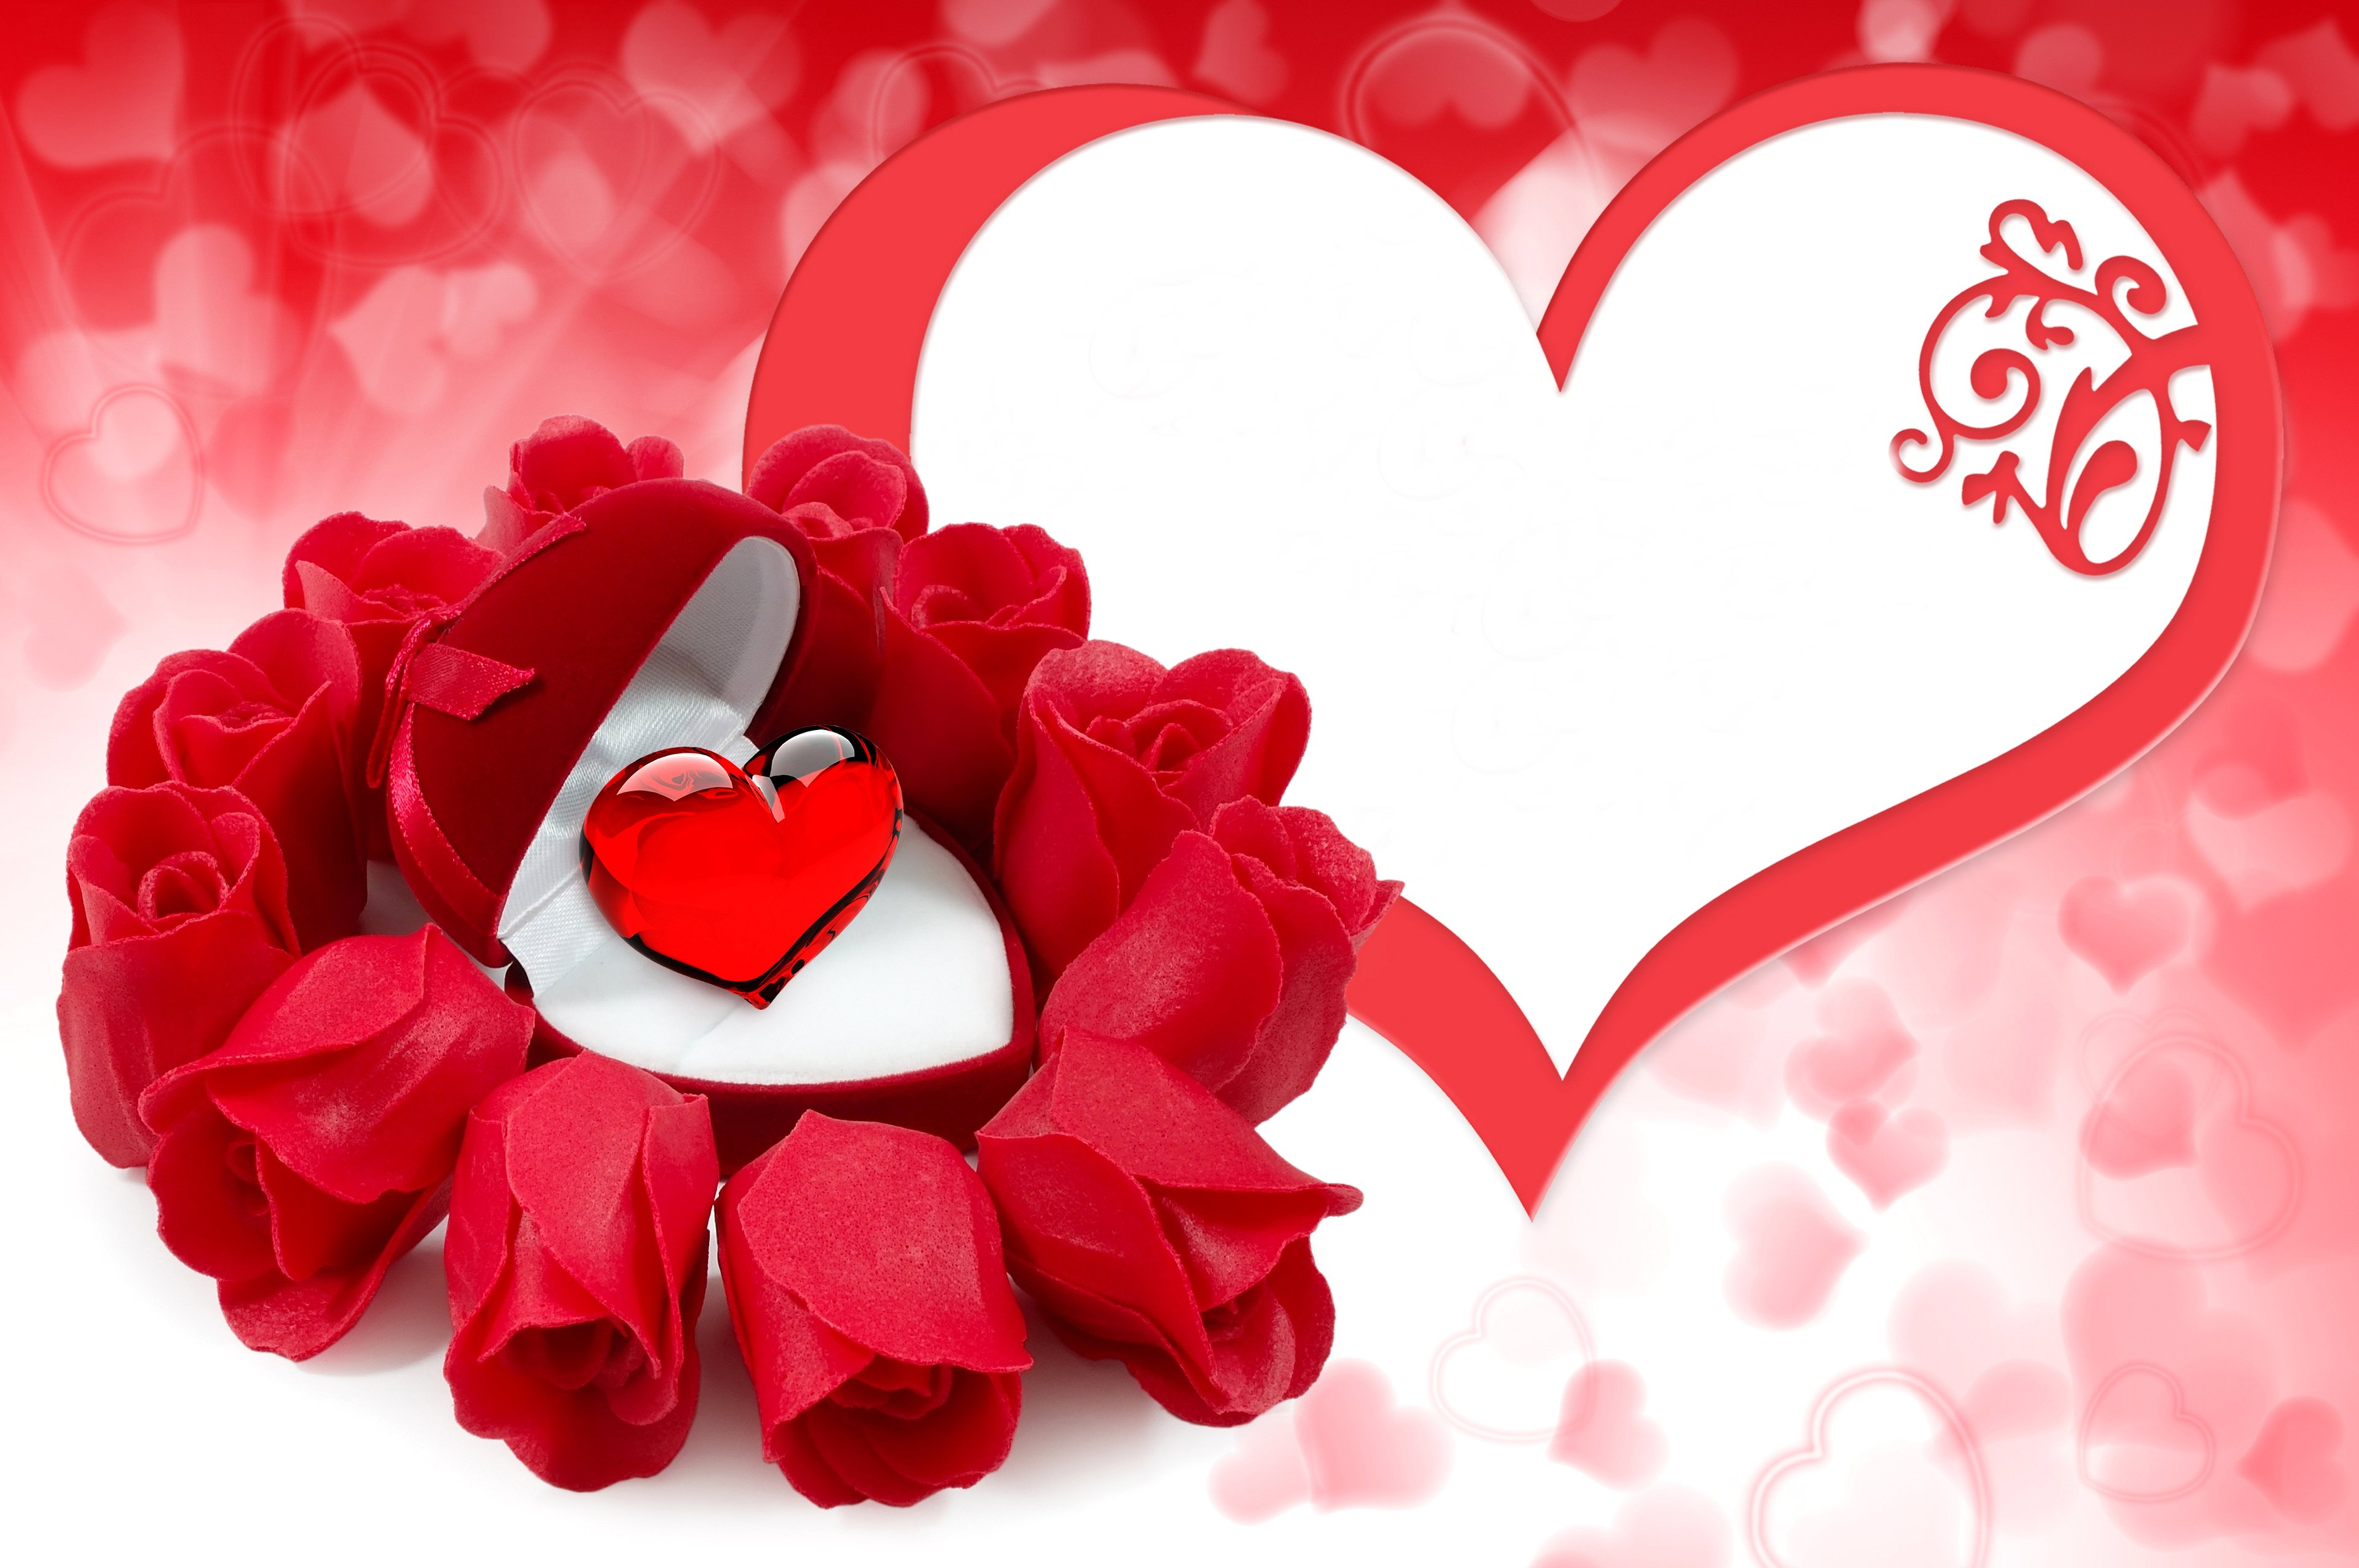 bouquet - hearts - couple - flowers - for - gift - life - love - red